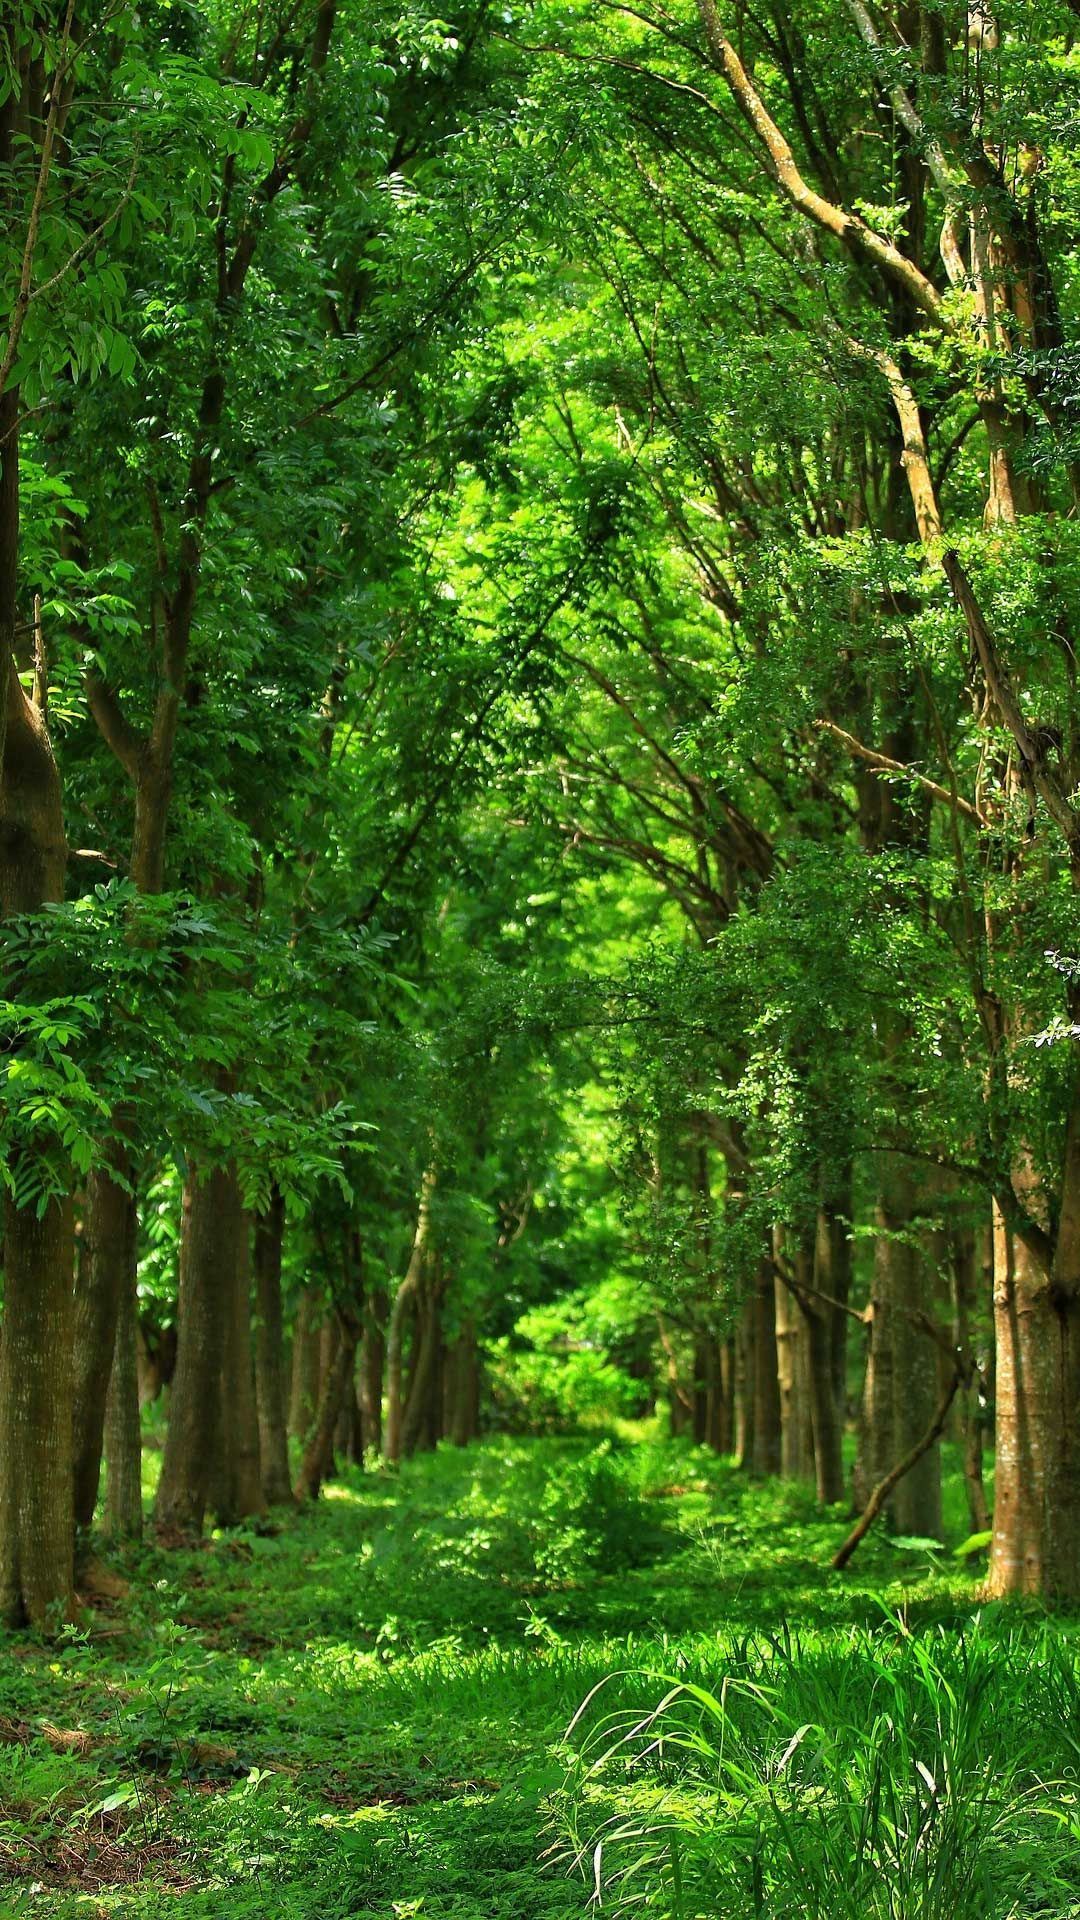 20 Forest Wallpaper Phone Backgrounds Hd Image For Free Download Green Nature Wallpaper Cool Pictures Of Nature Forest Wallpaper